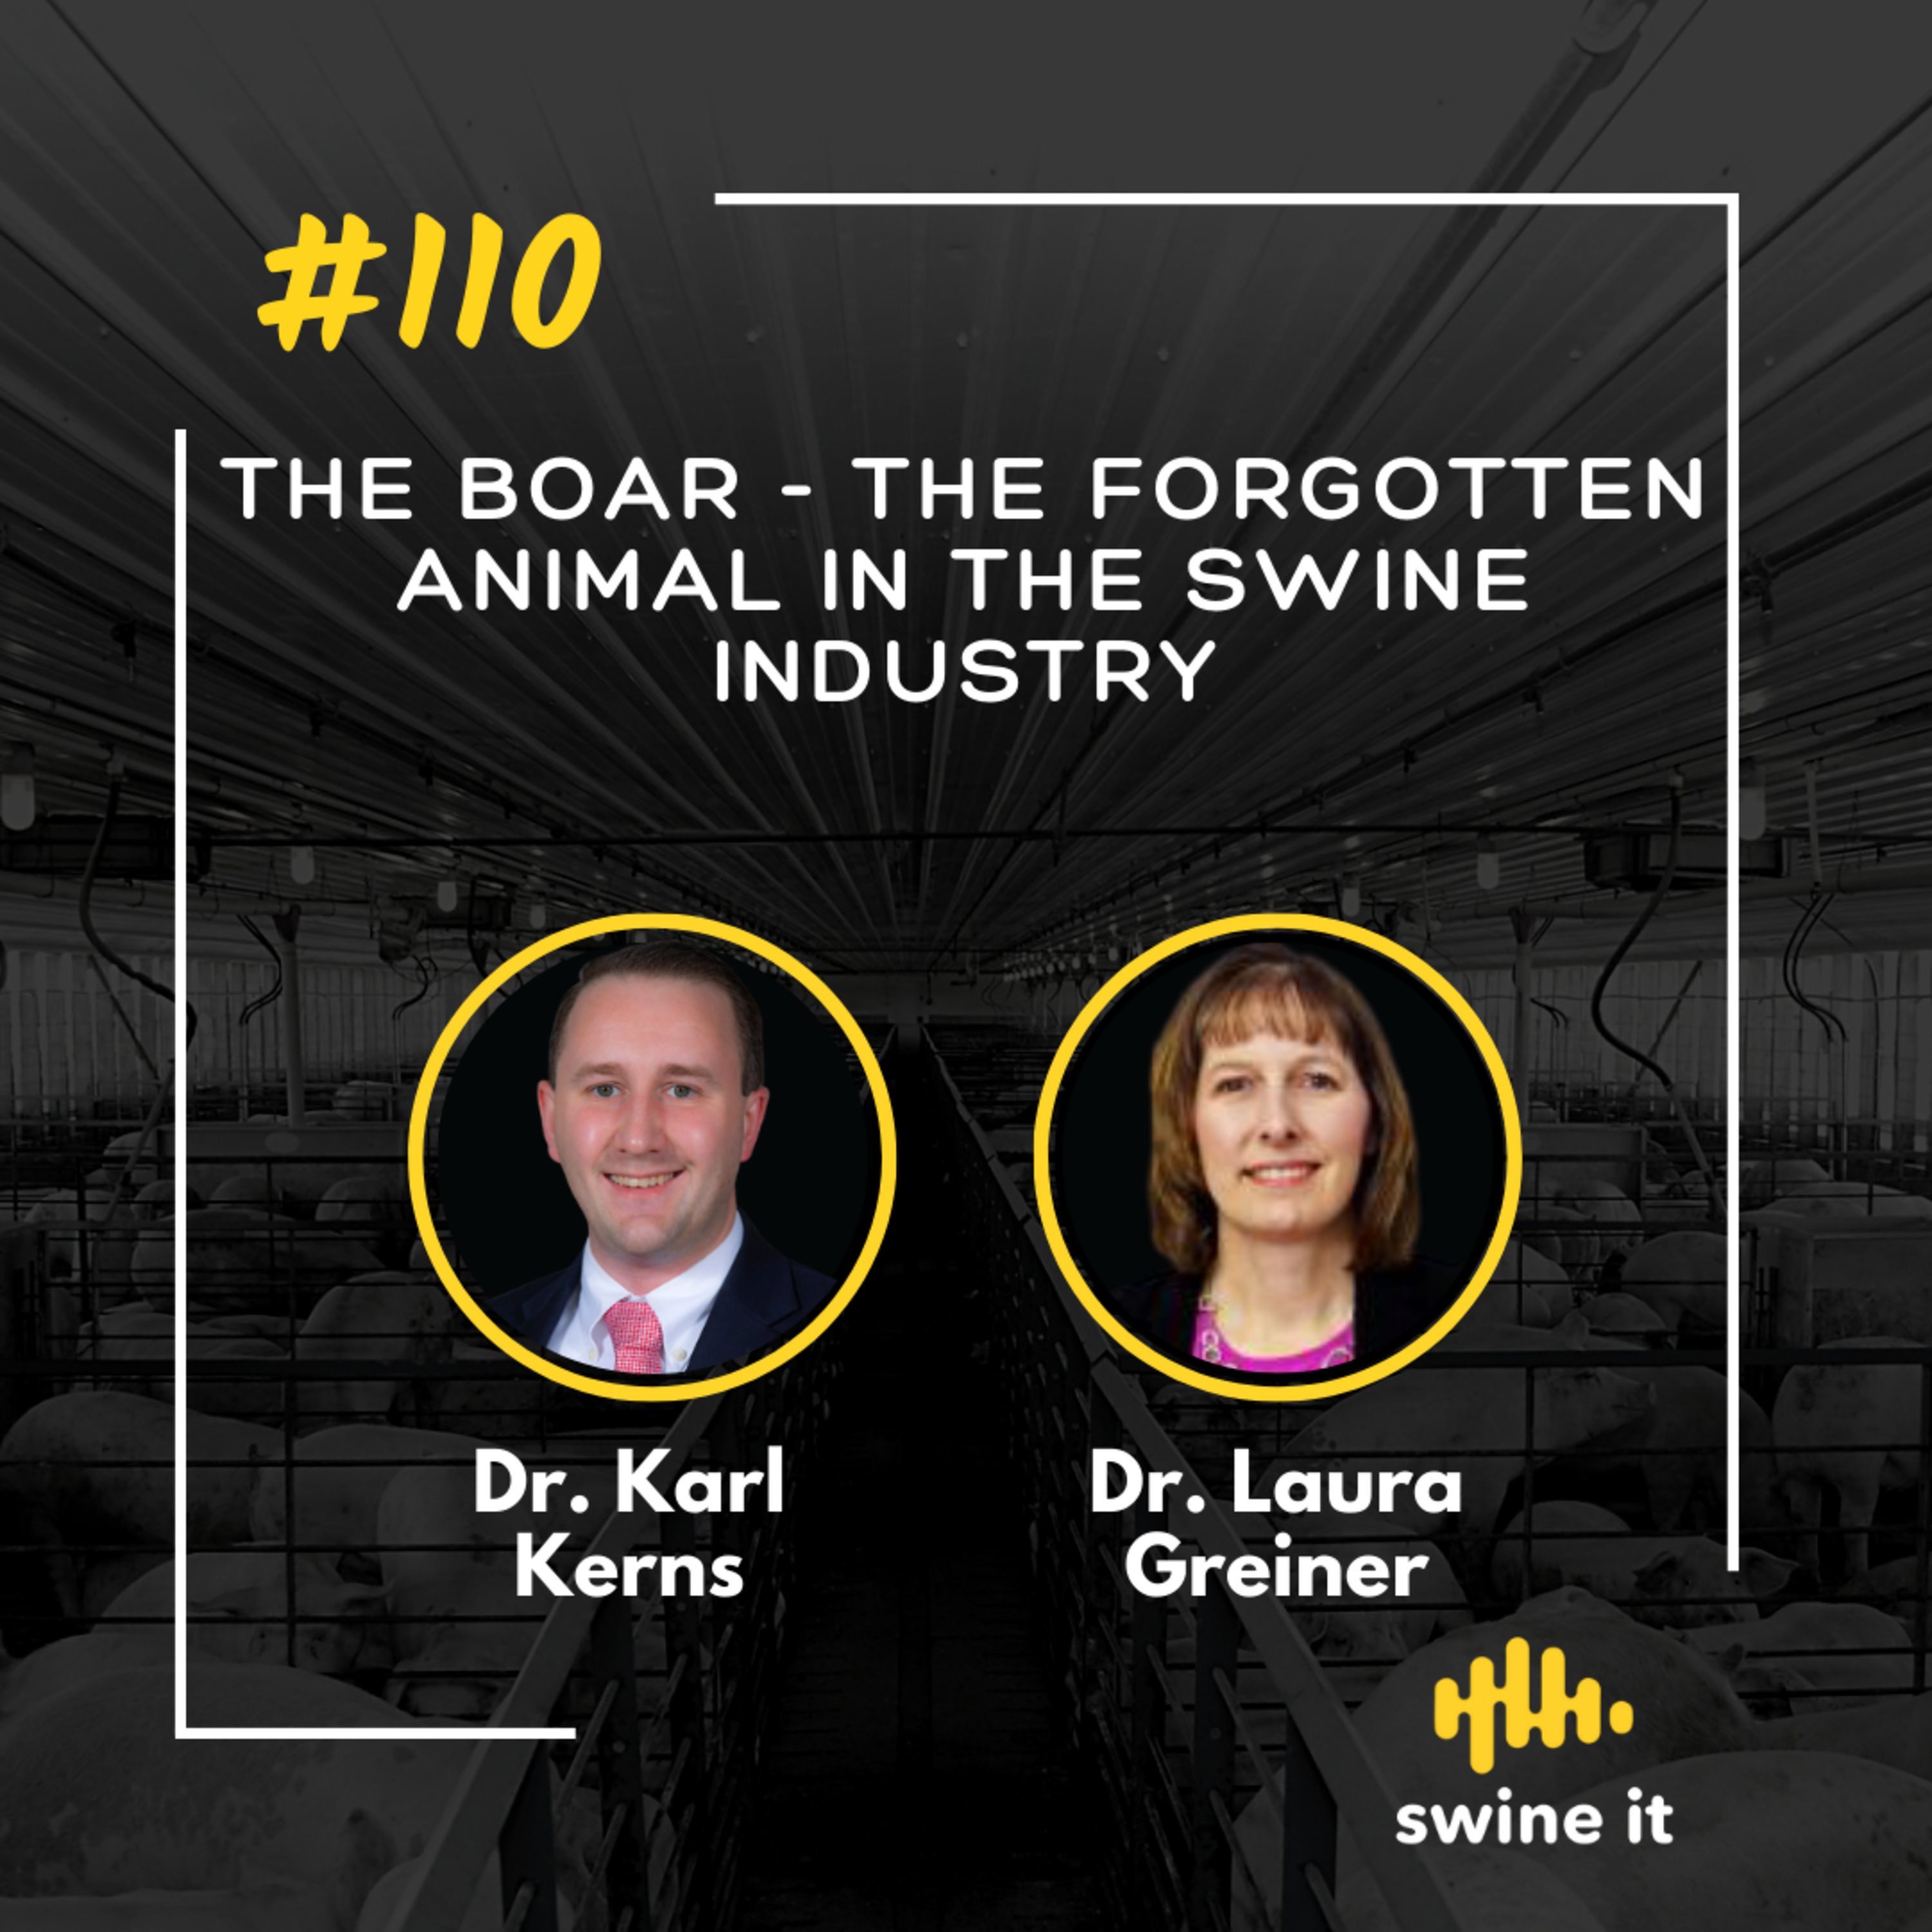 The Boar - the forgotten animal in the swine industry - Dr. Karl Kerns